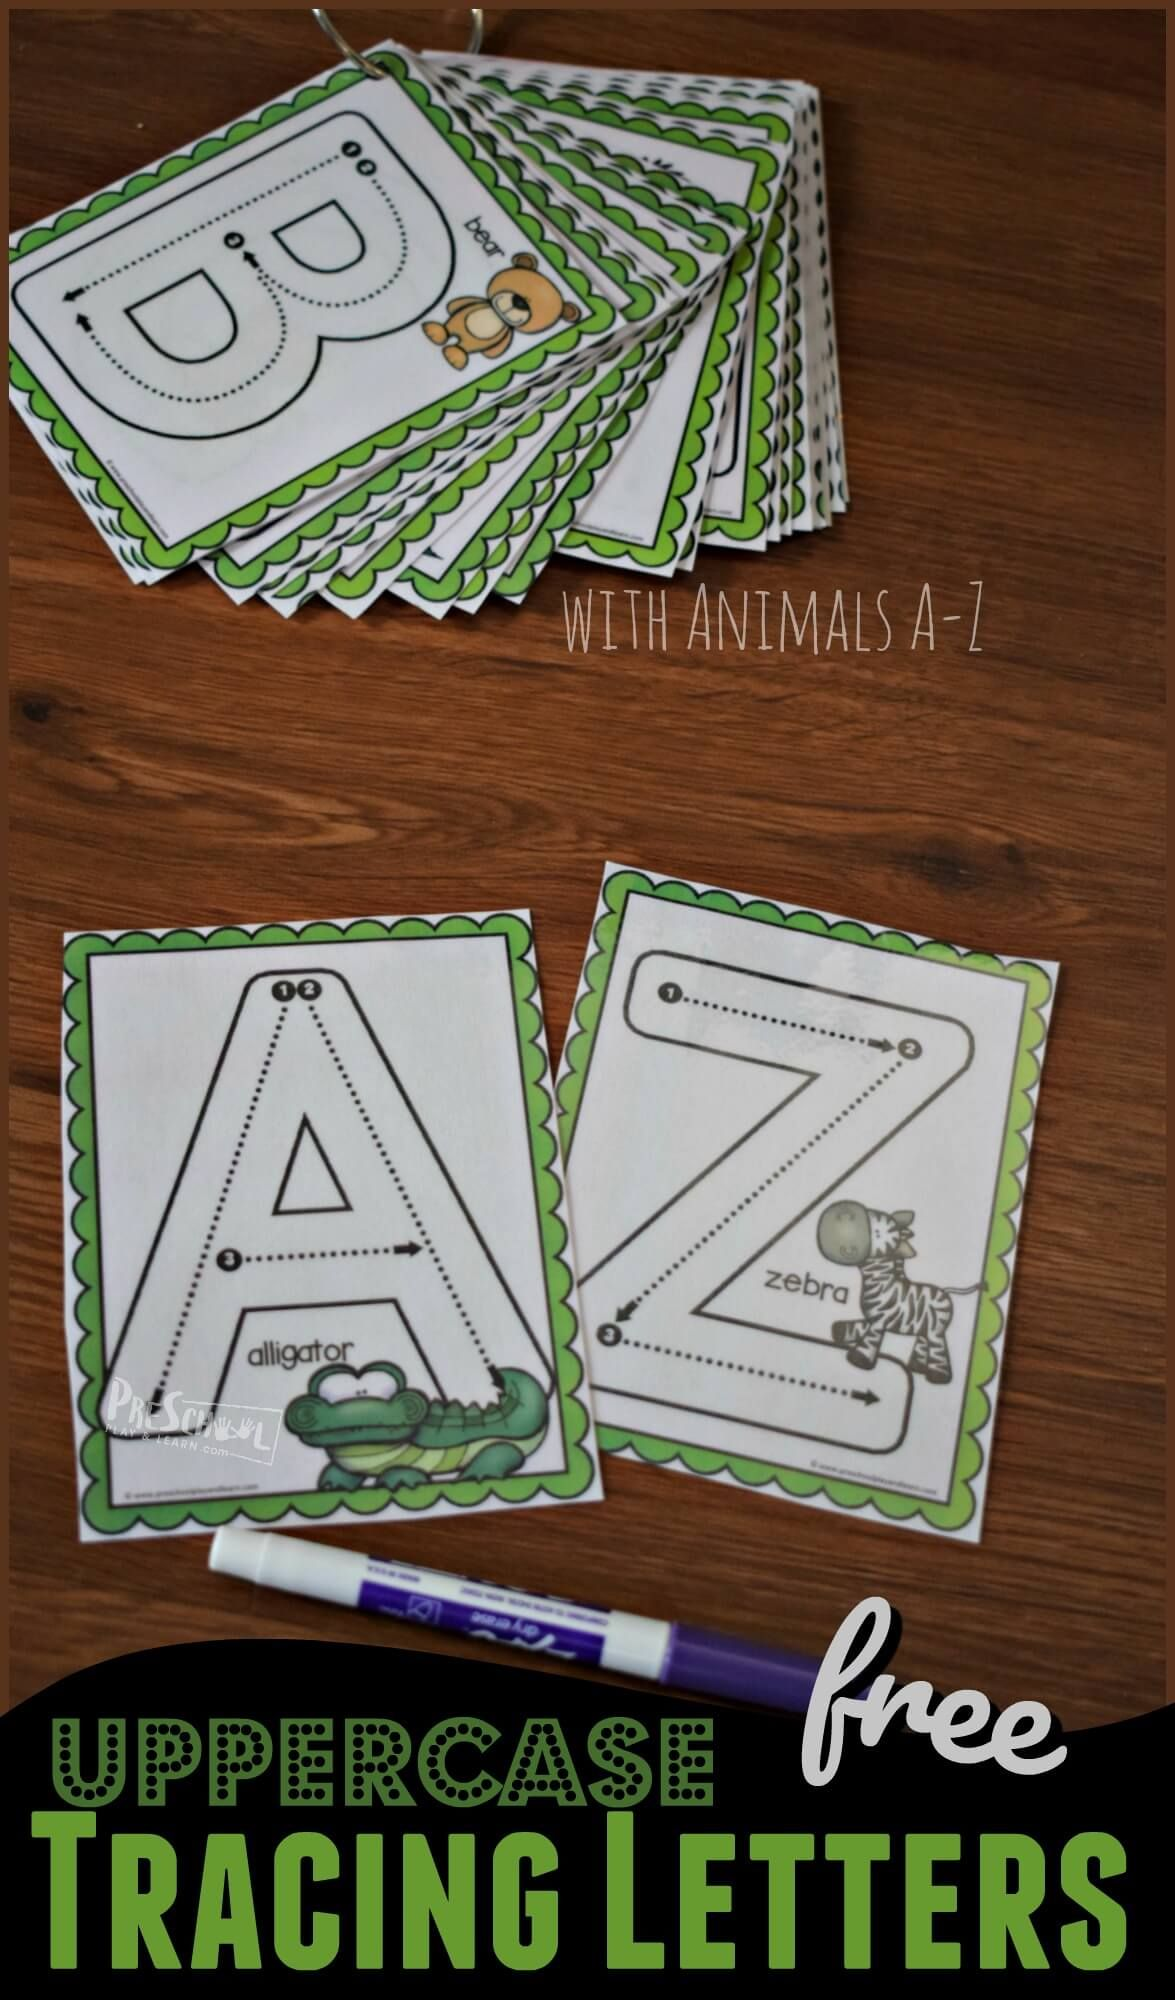 Free Uppercase Alphabet Cards With Animals From A Z